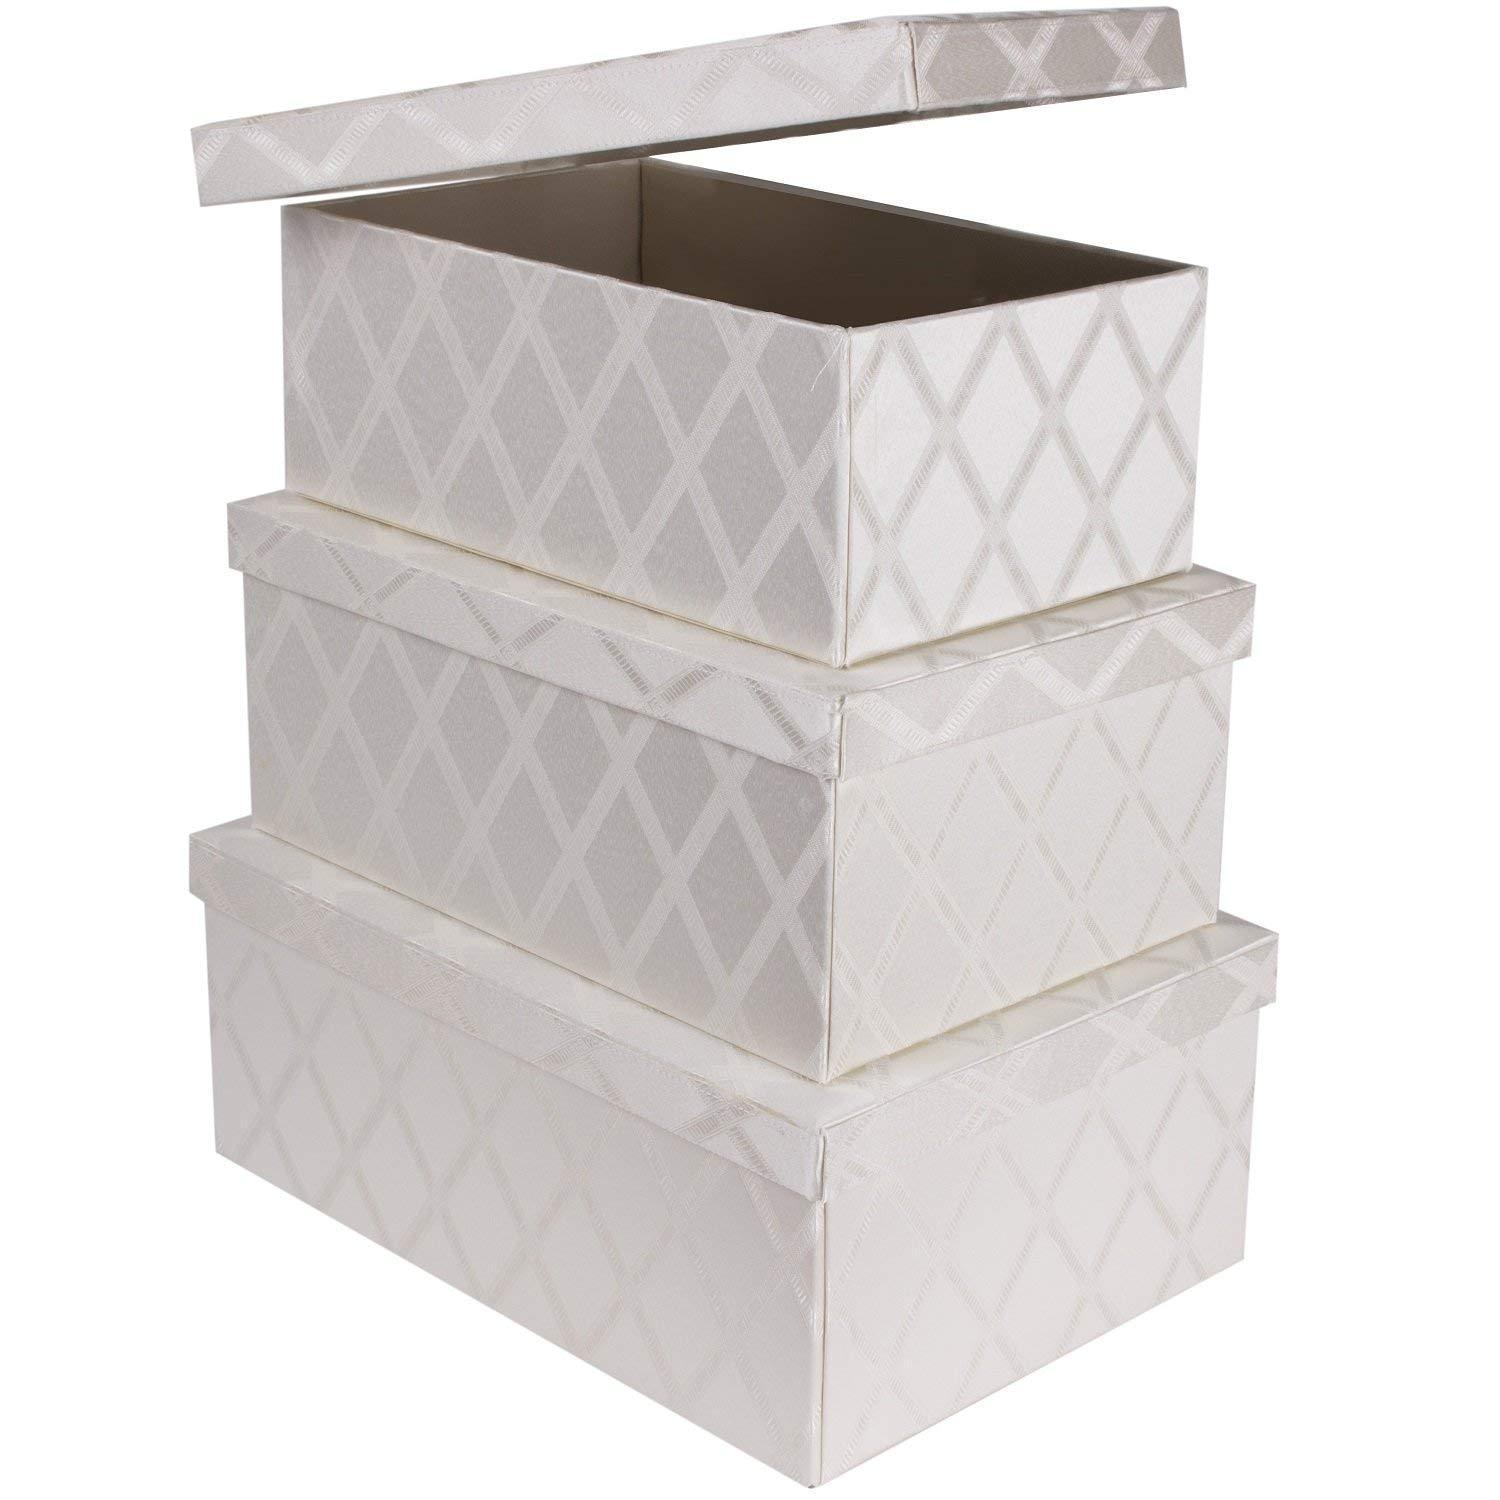 Shop for toys storage bins 3 pcs set fabric decorative storage boxes with lids shelf closet organizer basket decor nesting boxes stylish gift boxes with lids large medium small sizes off white